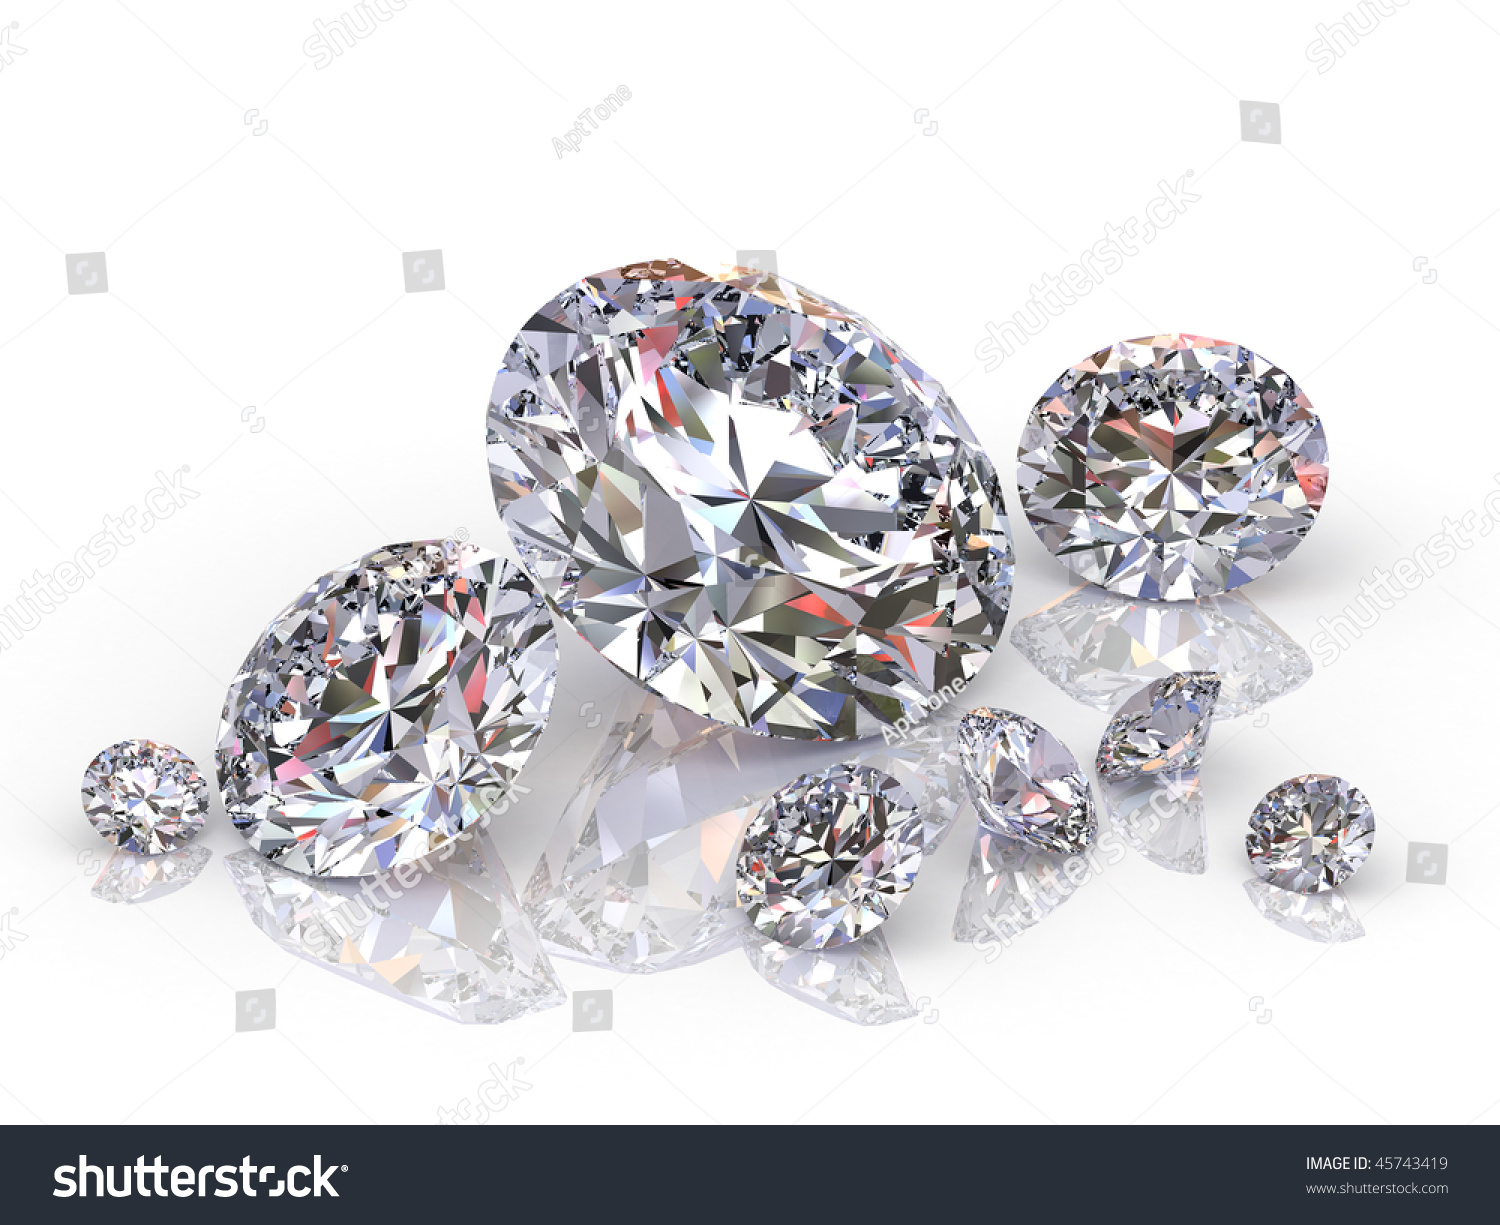 wallpapers pulver desktop quality diamonds diamond pics hd shantay high